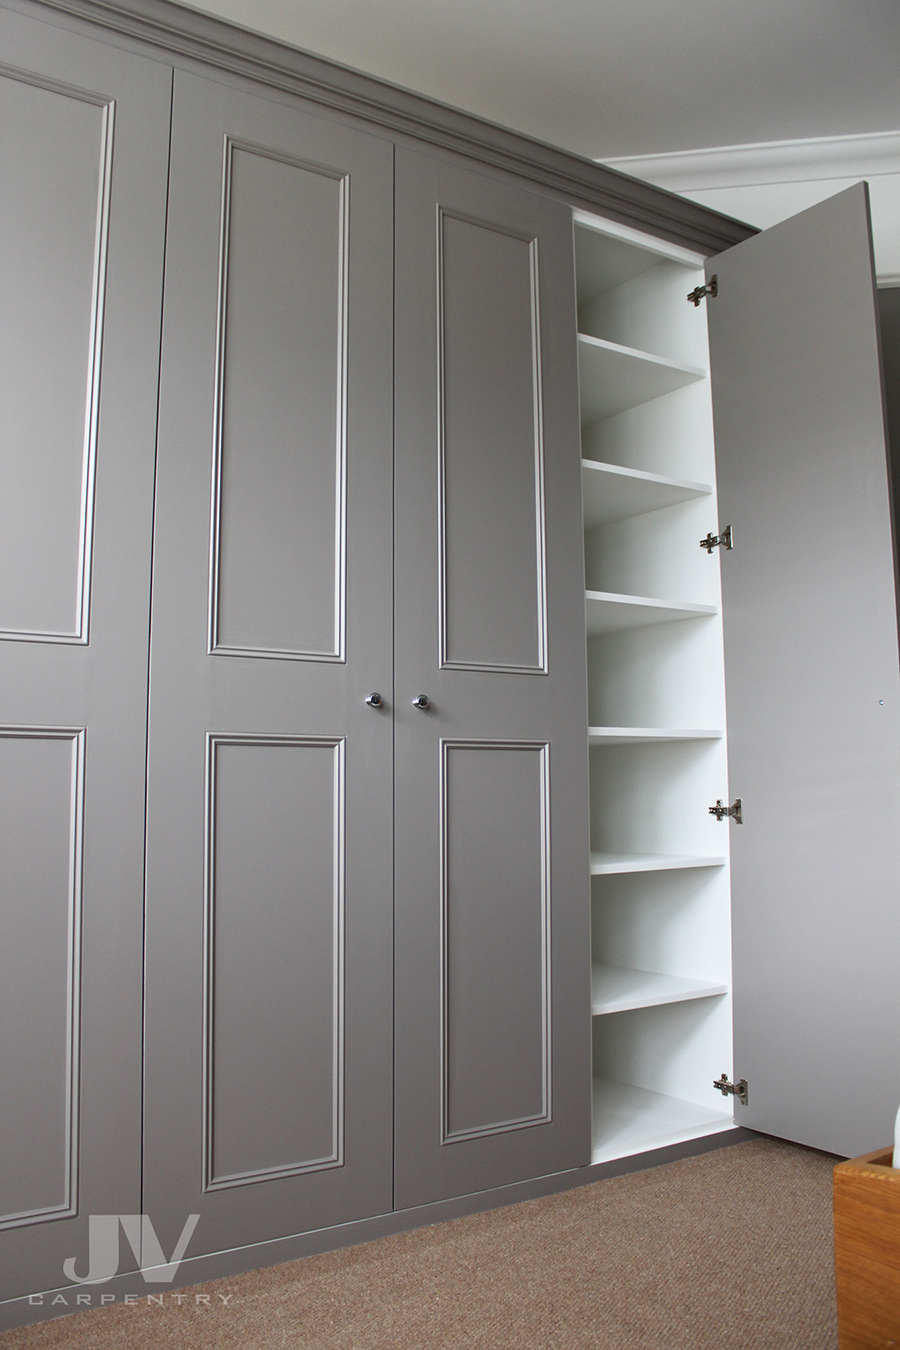 Bedroom Fitted wardrobe with shelves